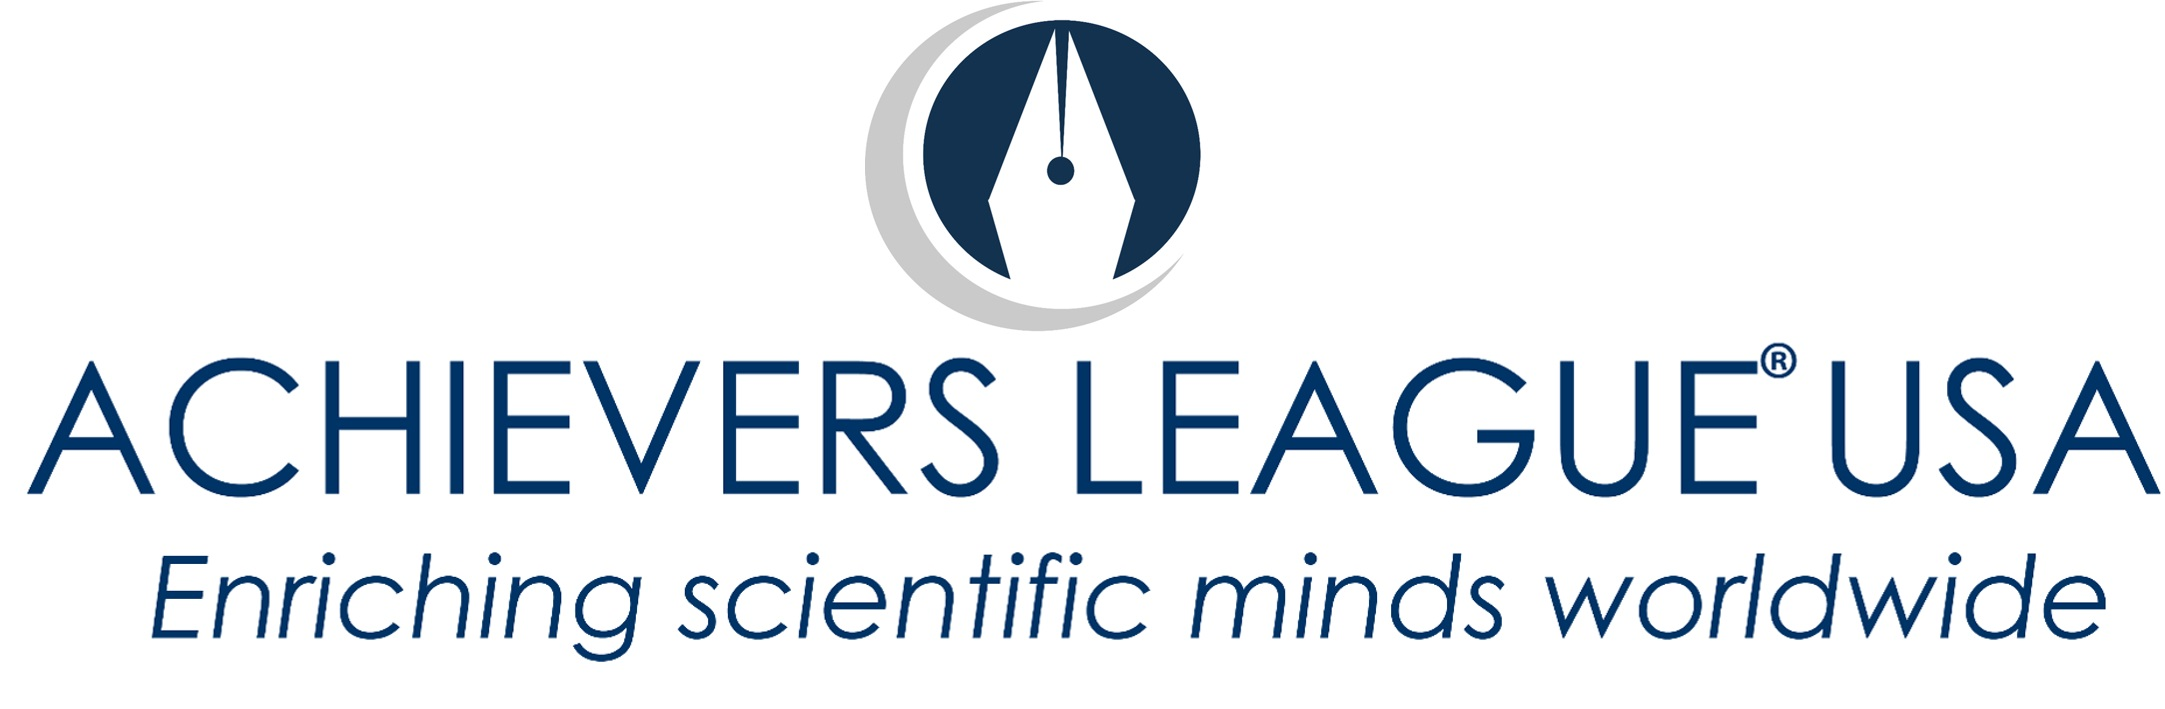 ACHIEVERS LEAGUE USA